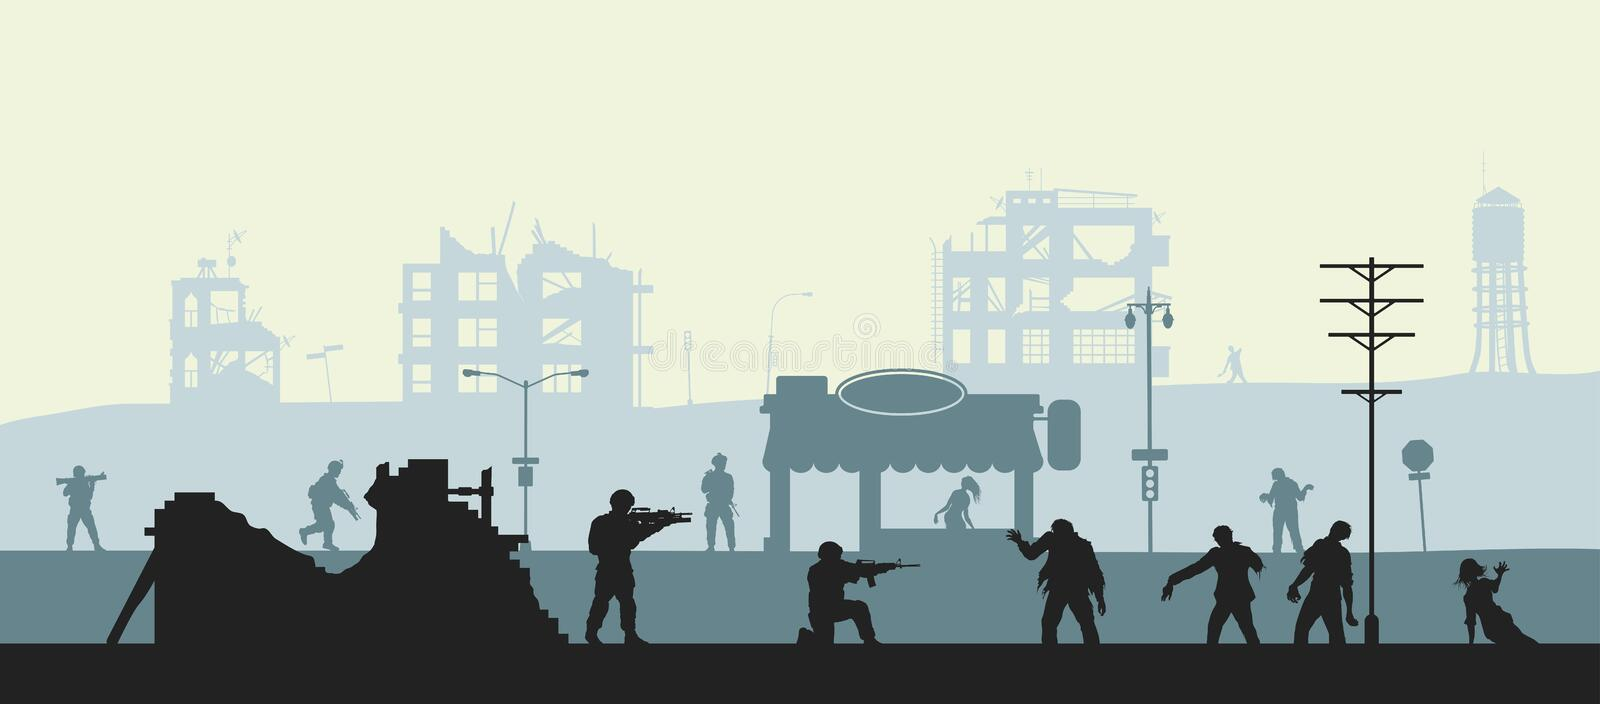 Zombie apocalypse scene. Silhouette of soldiers and dead peoples. Military landscape. Undead in city. Nightmare monsters royalty free illustration